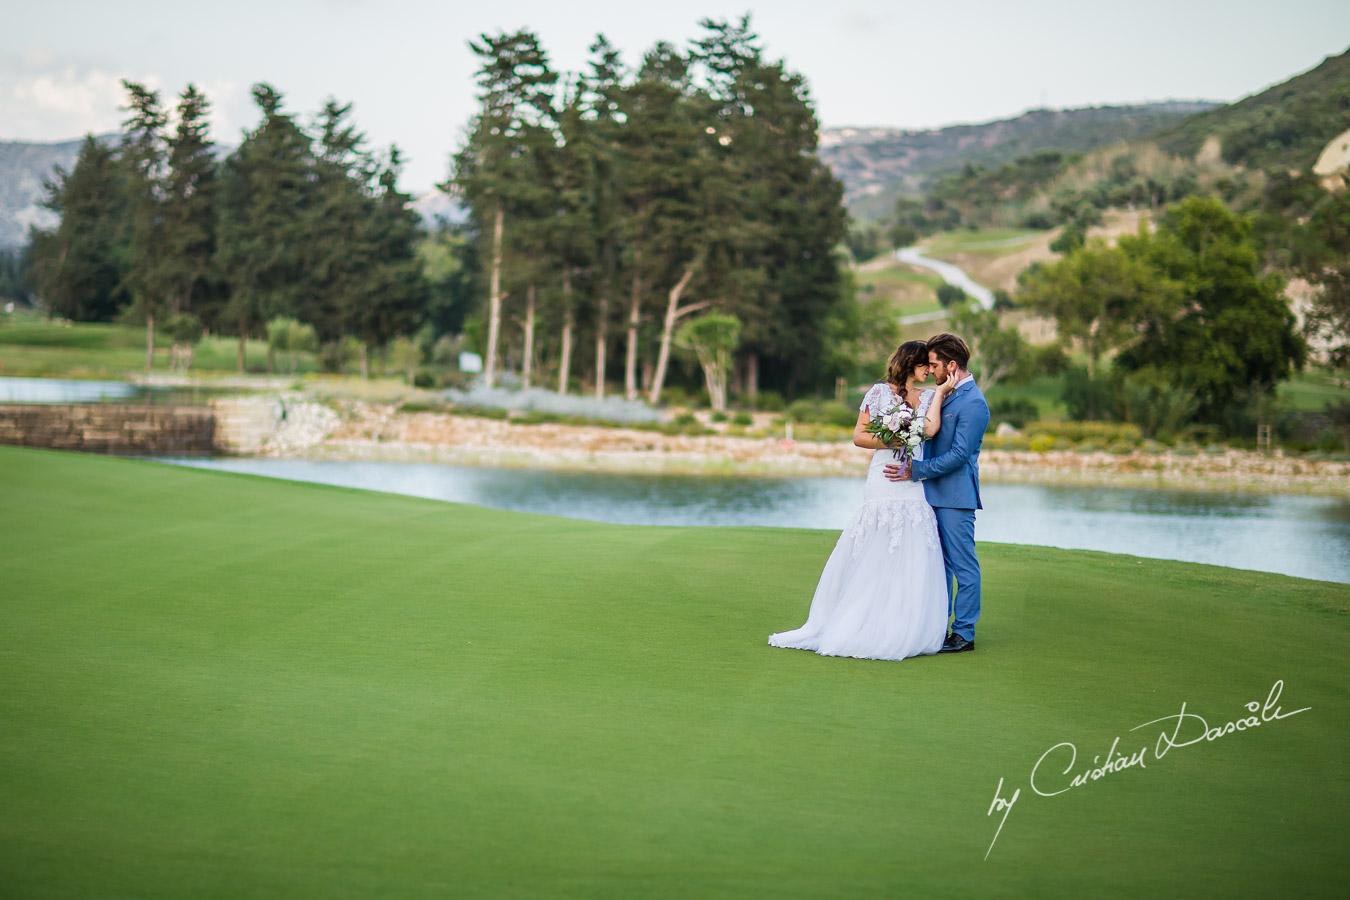 Wedding Editorial Photo Shoot at Secret Valley - 14